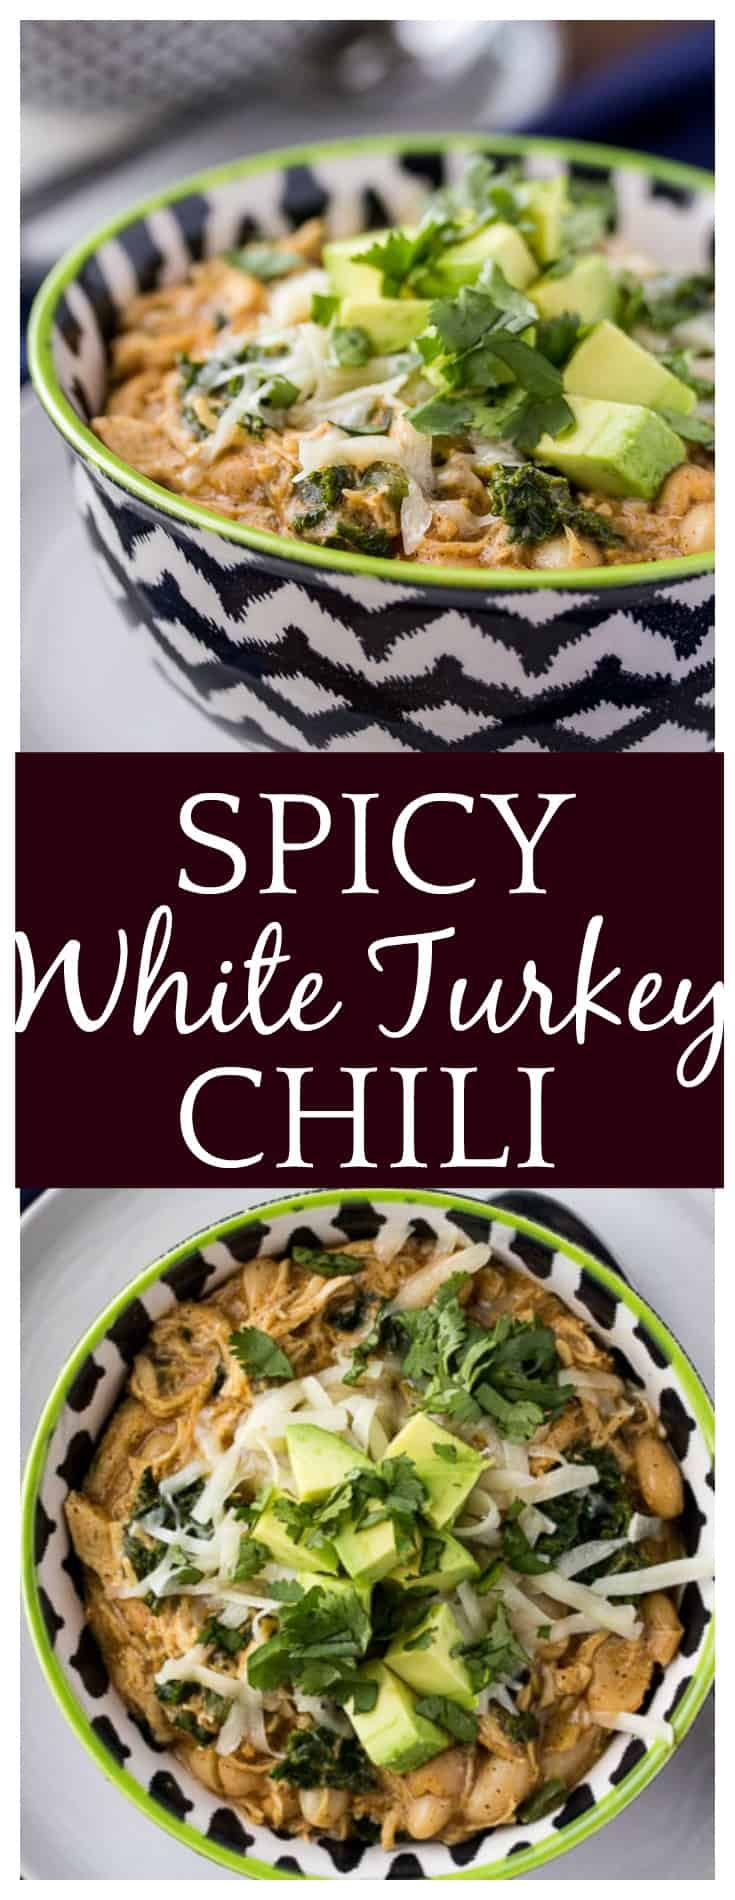 Full of flavor and a little spice, this Spicy White Turkey Chili is warm and comforting. This is an easy recipe for comfort food deliciousness! | #turkeychili #chili #easyrecipe #comfortfood #dlbrecipes